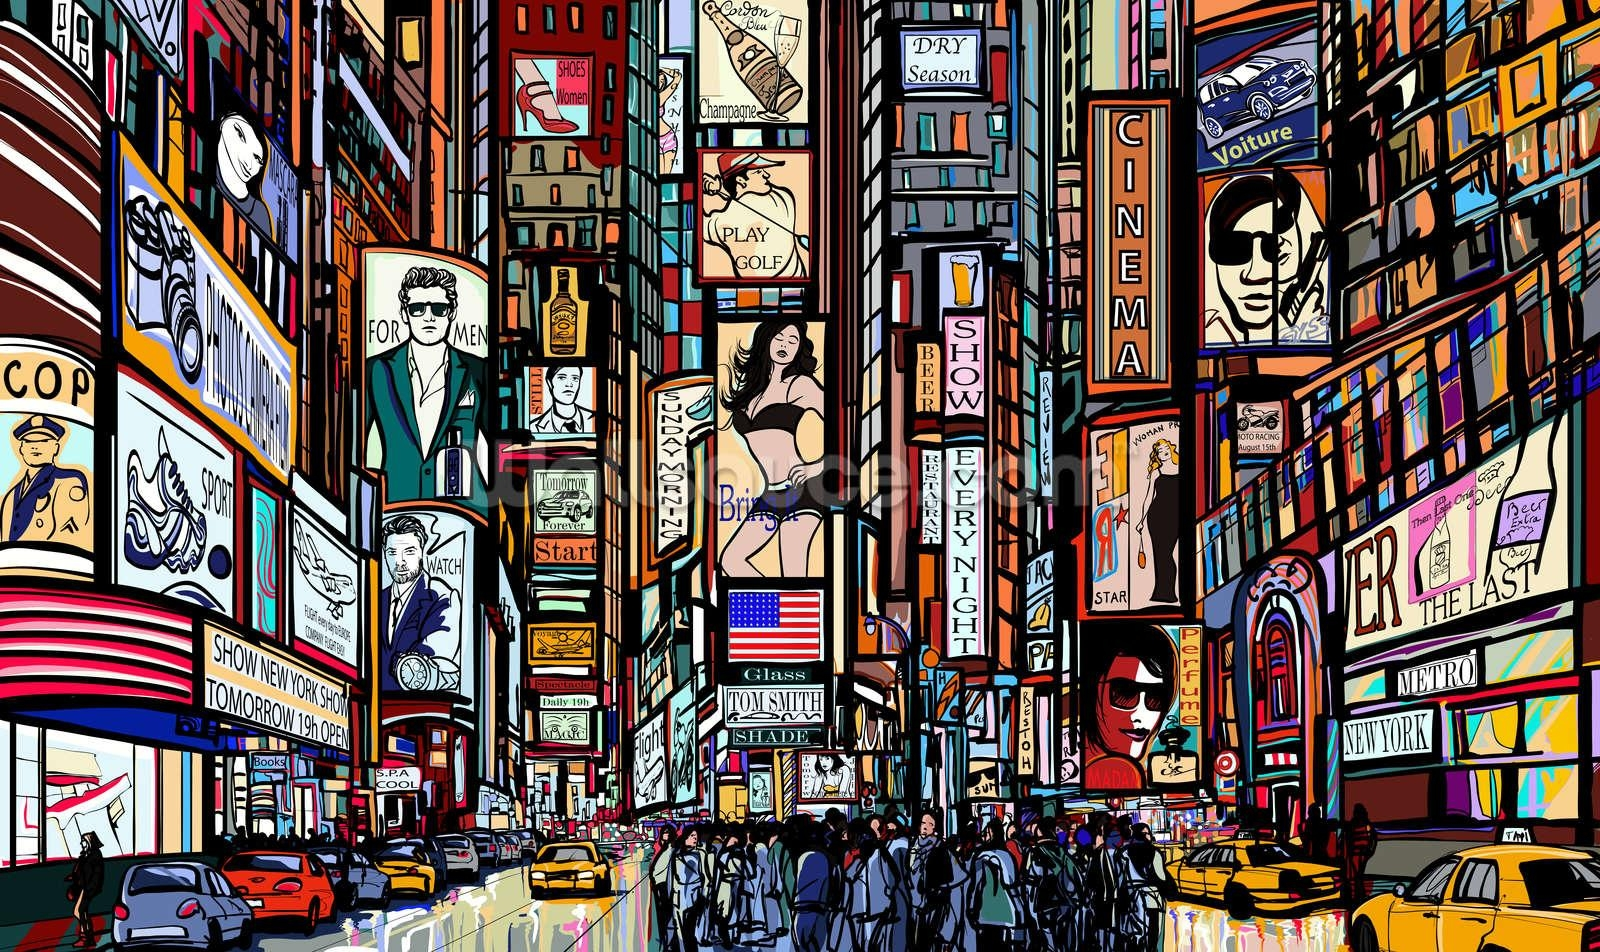 Times Square Abstract Wallpaper Wall Mural | Wallsauce Usa Intended For Abstract Art Wall Murals (Image 17 of 20)